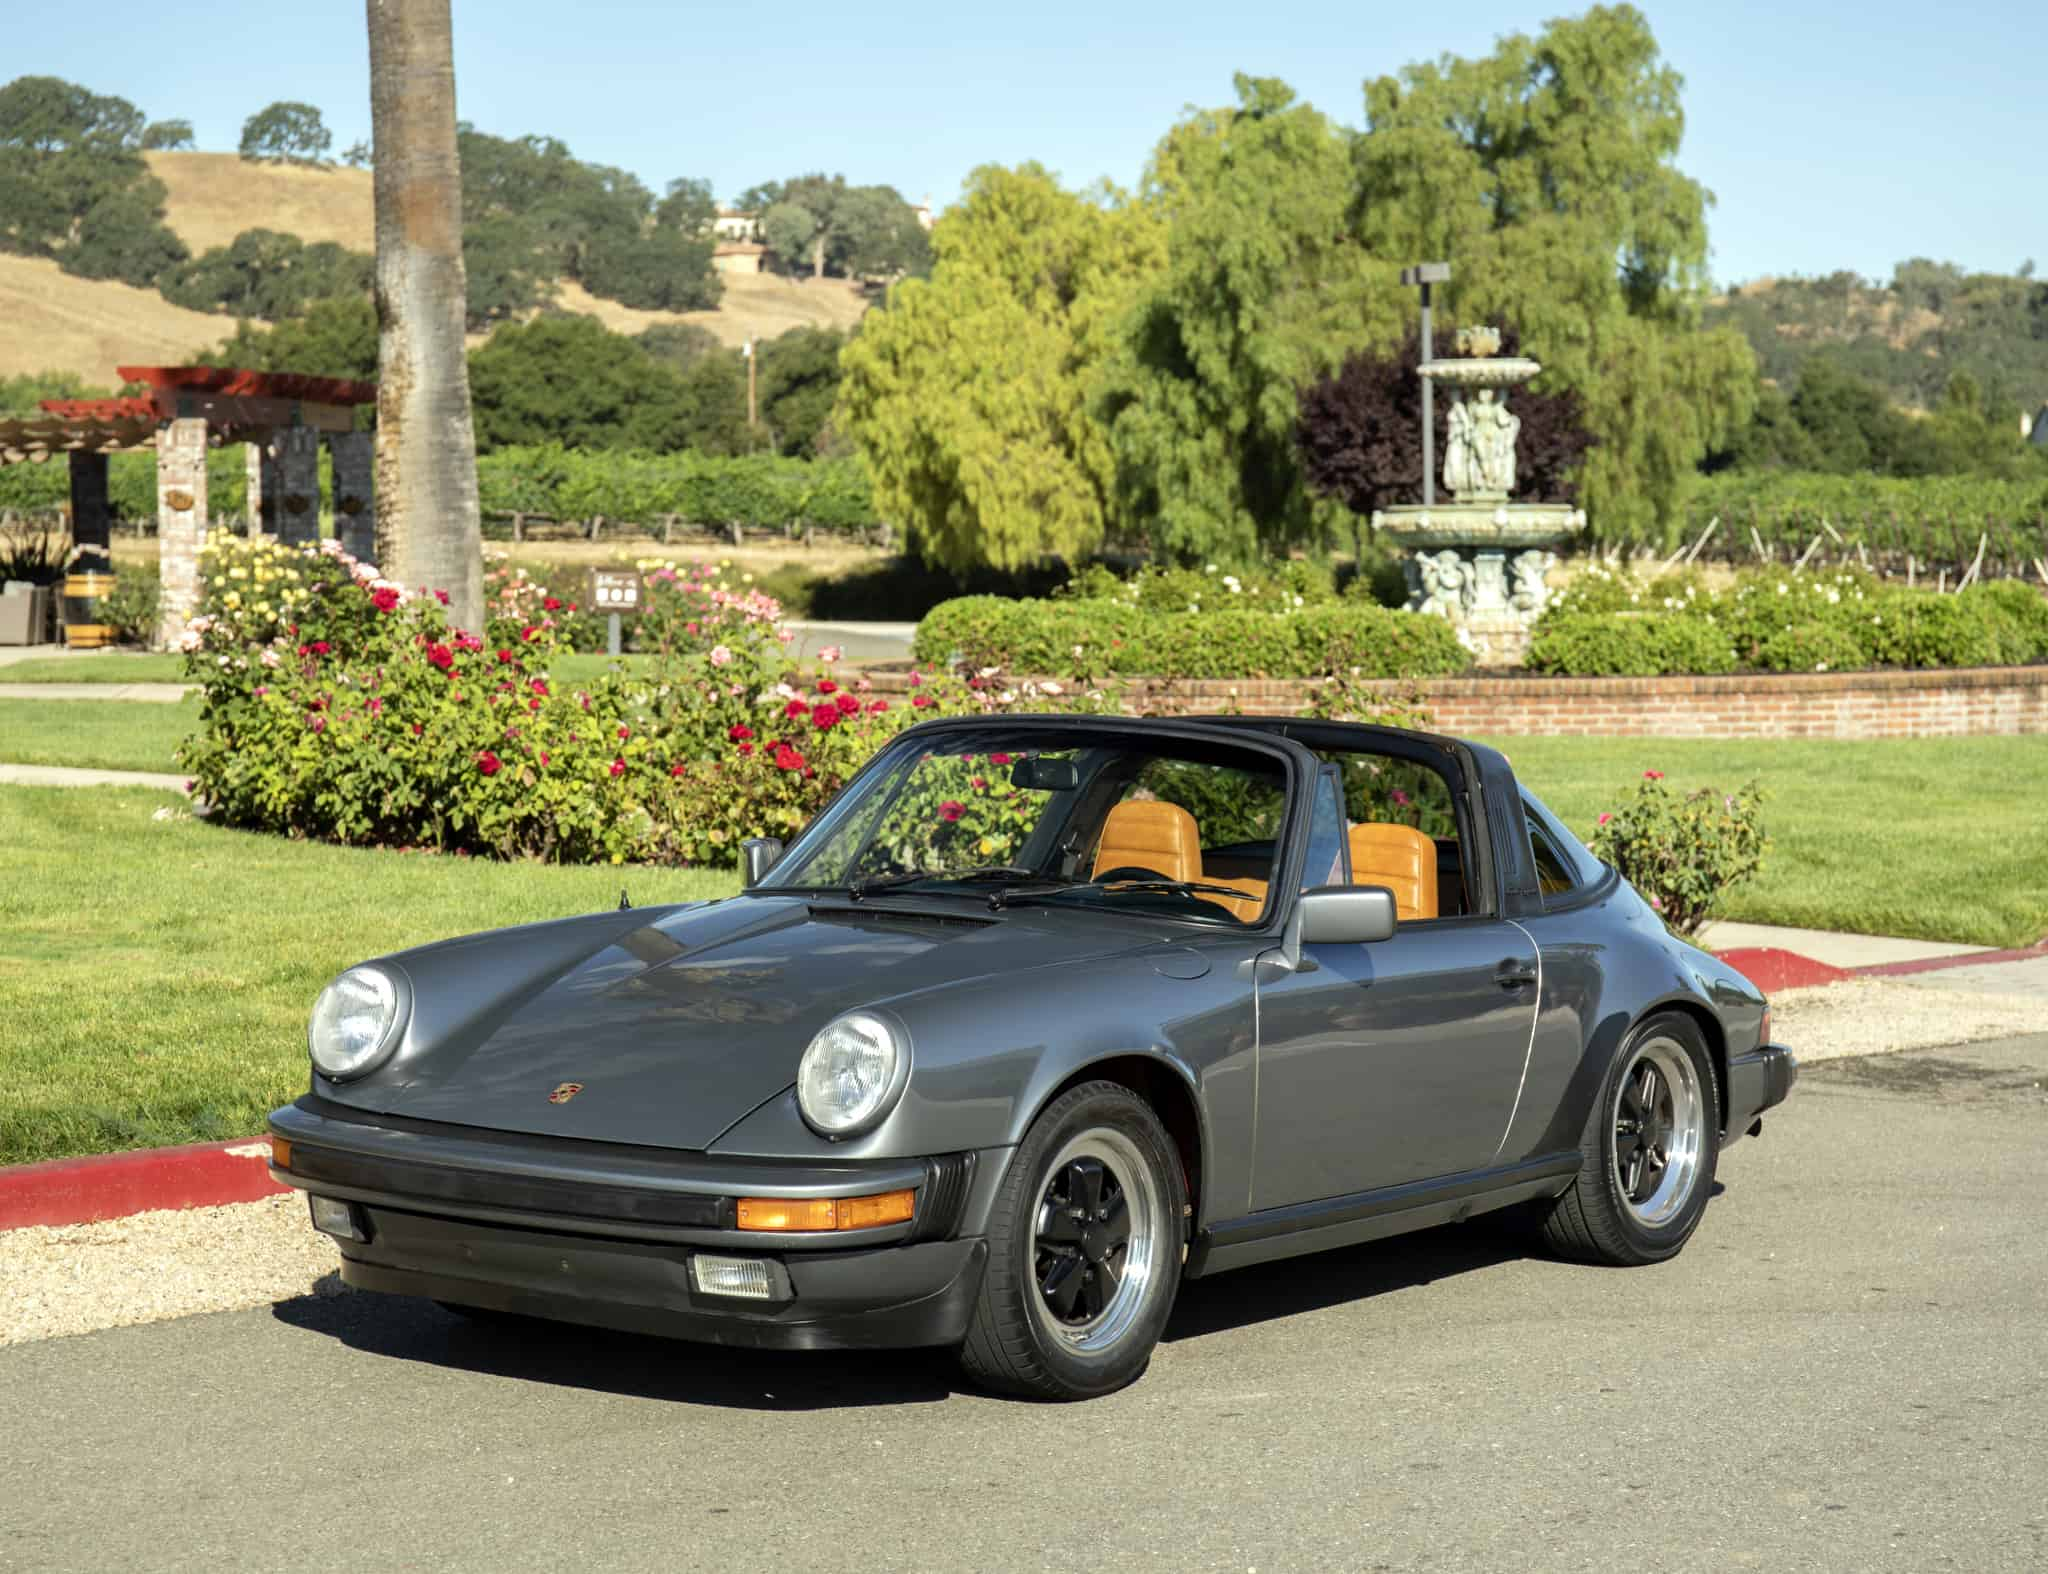 Classic Porsche For Sale >> Cars For Sale Archive Dusty Cars